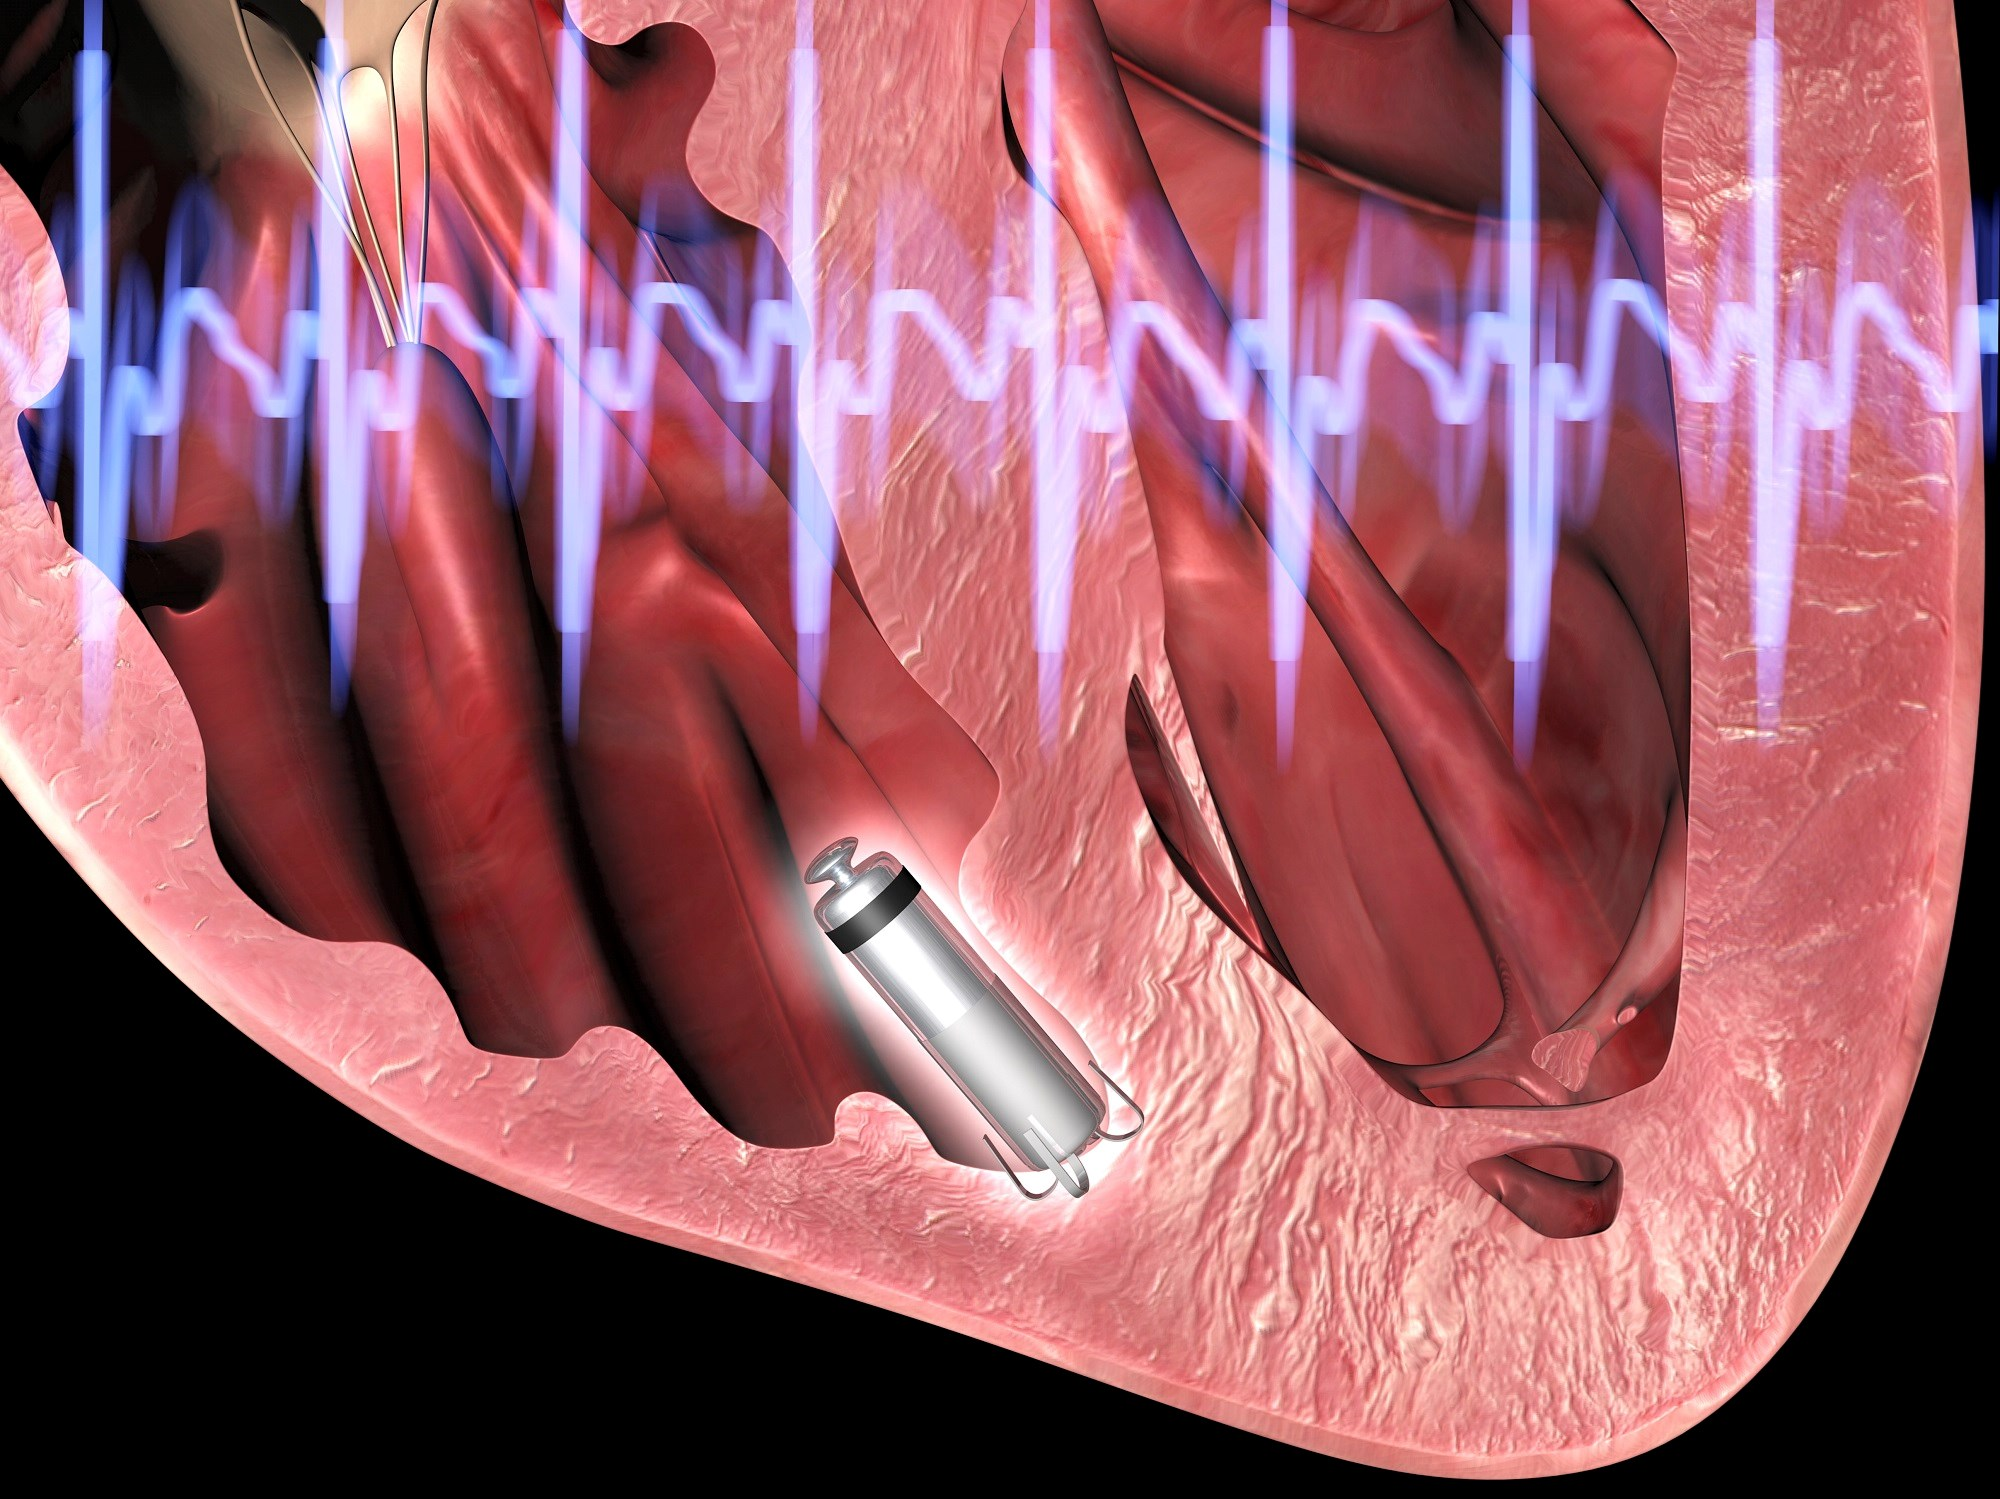 Although the results thus far are encouraging, the long-term comparative effects of leadless pacemakers will not be elucidated for at least a decade. <i>Photo Credit: Alfred Pasieka/Science Source</i>